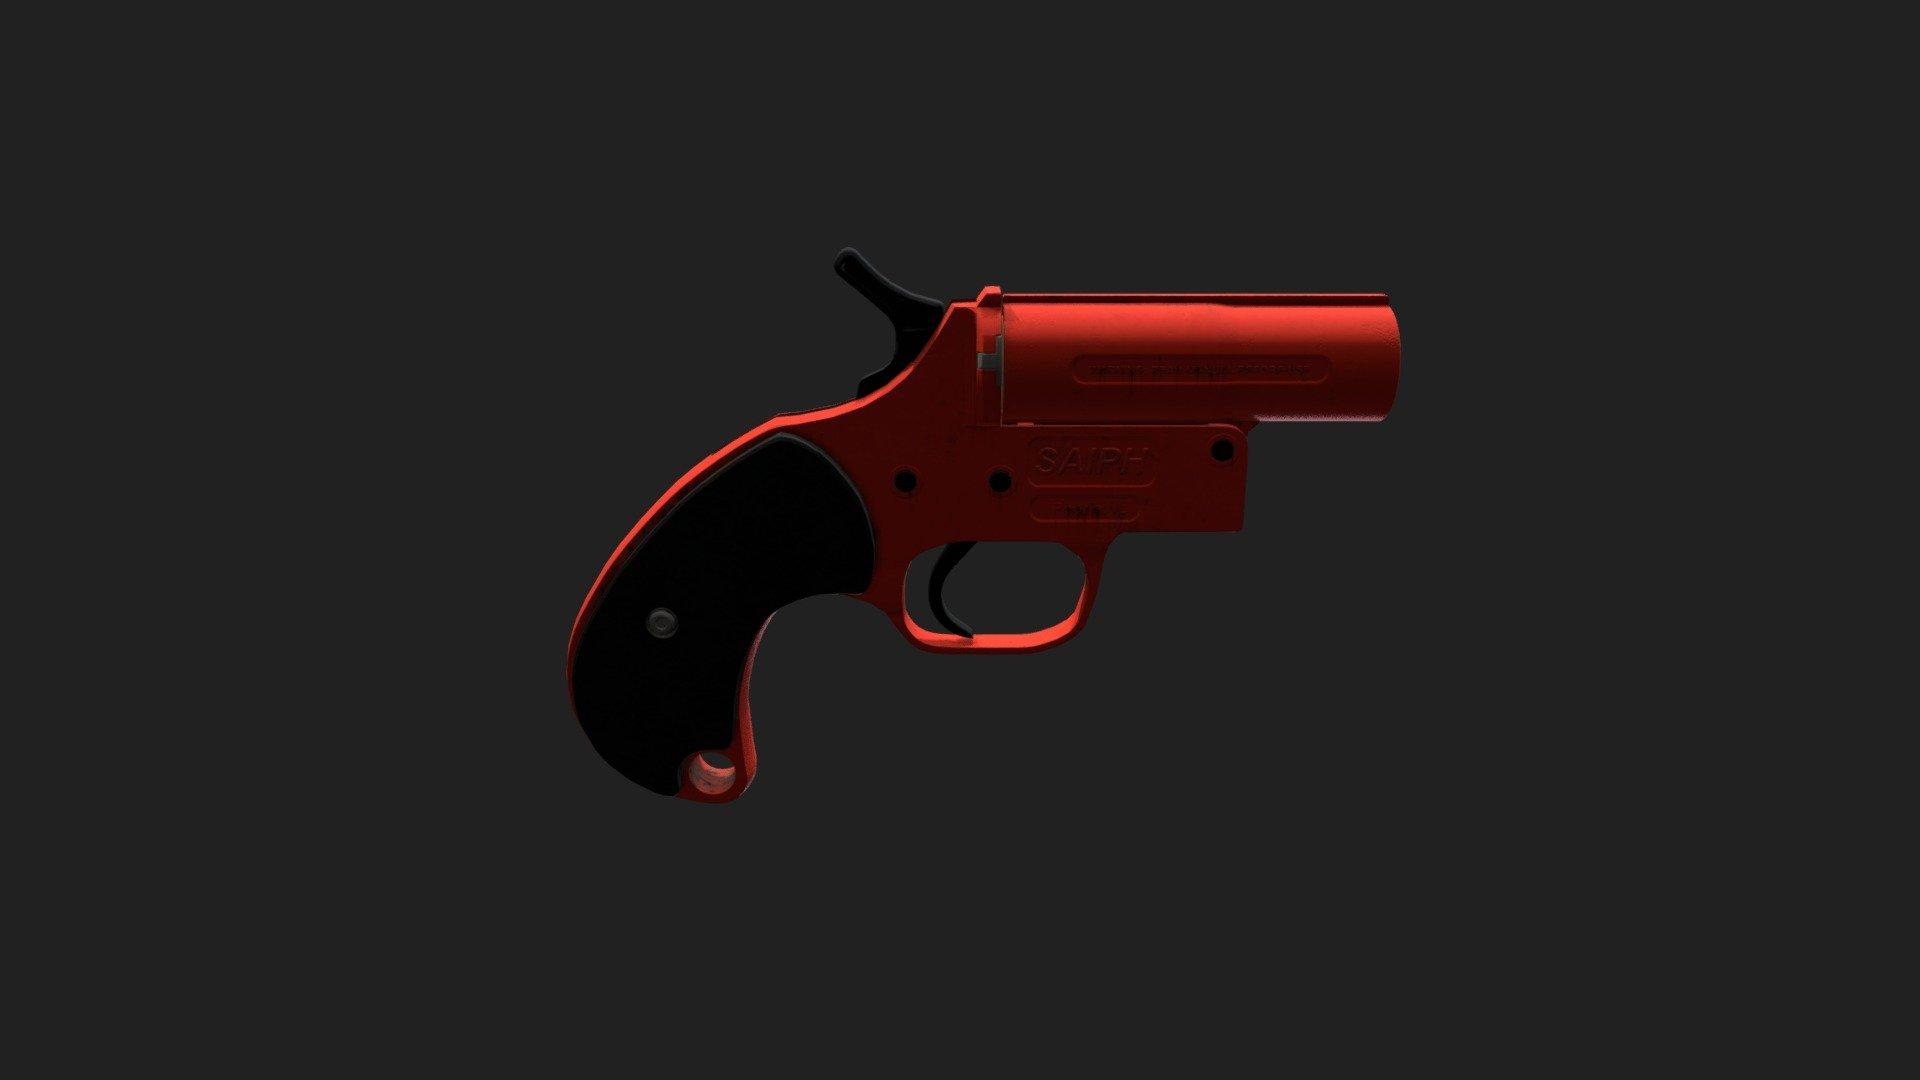 Flare Gun Wallpapers - Wallpaper Cave